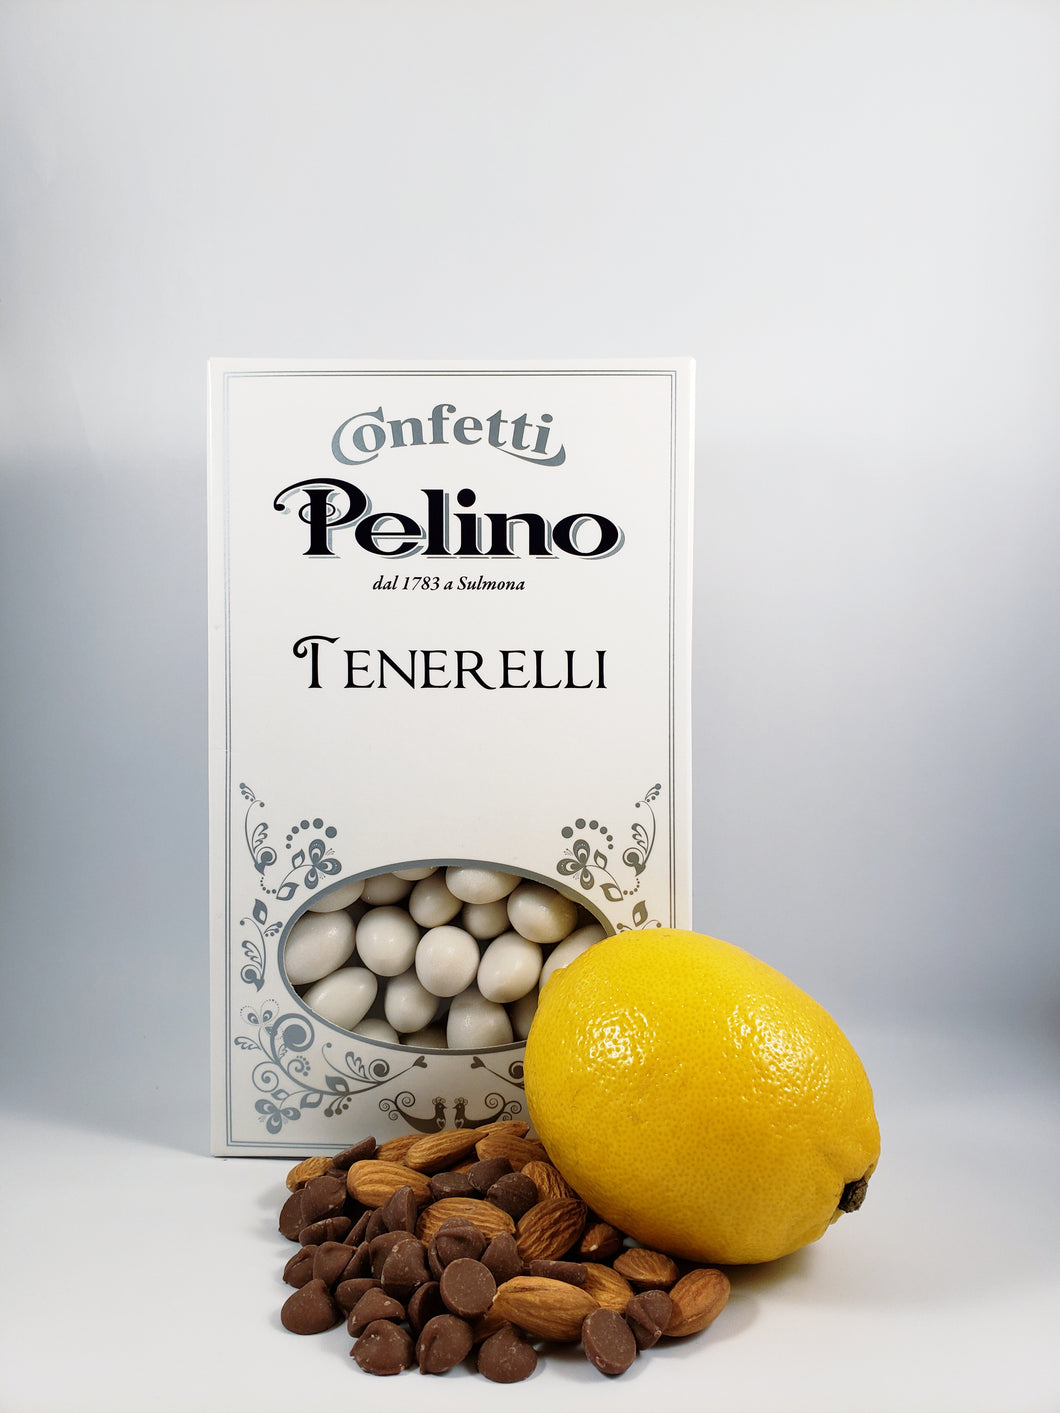 Confetti Tenerelli Milk Chocolate Almond - Lemon Flavored - 500 g